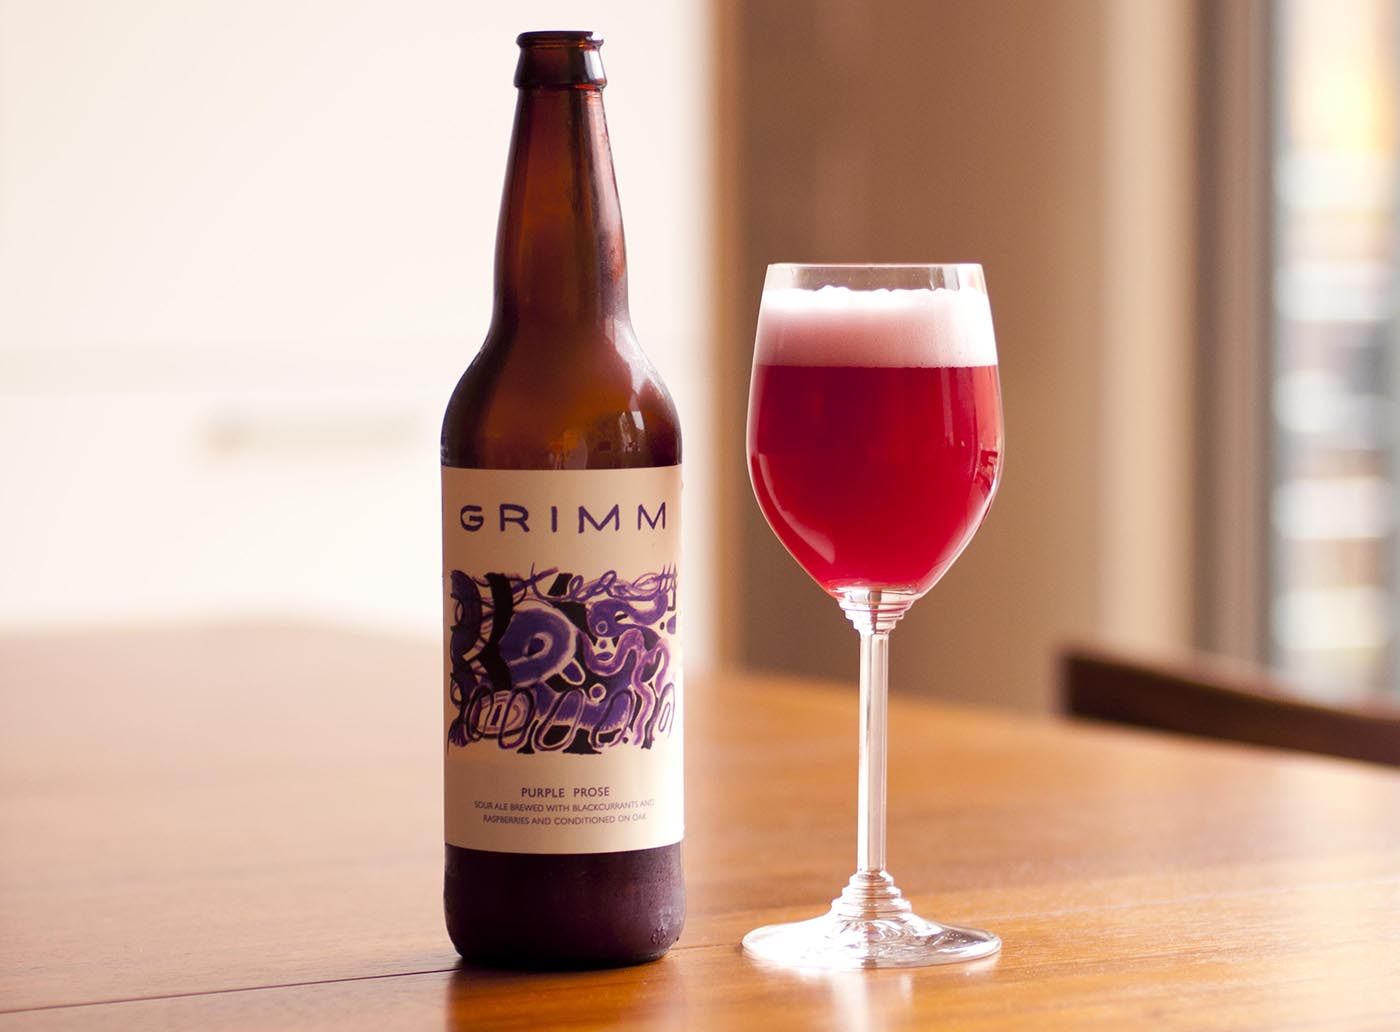 New Release: Purple Prose from Grimm Artisanal Ales